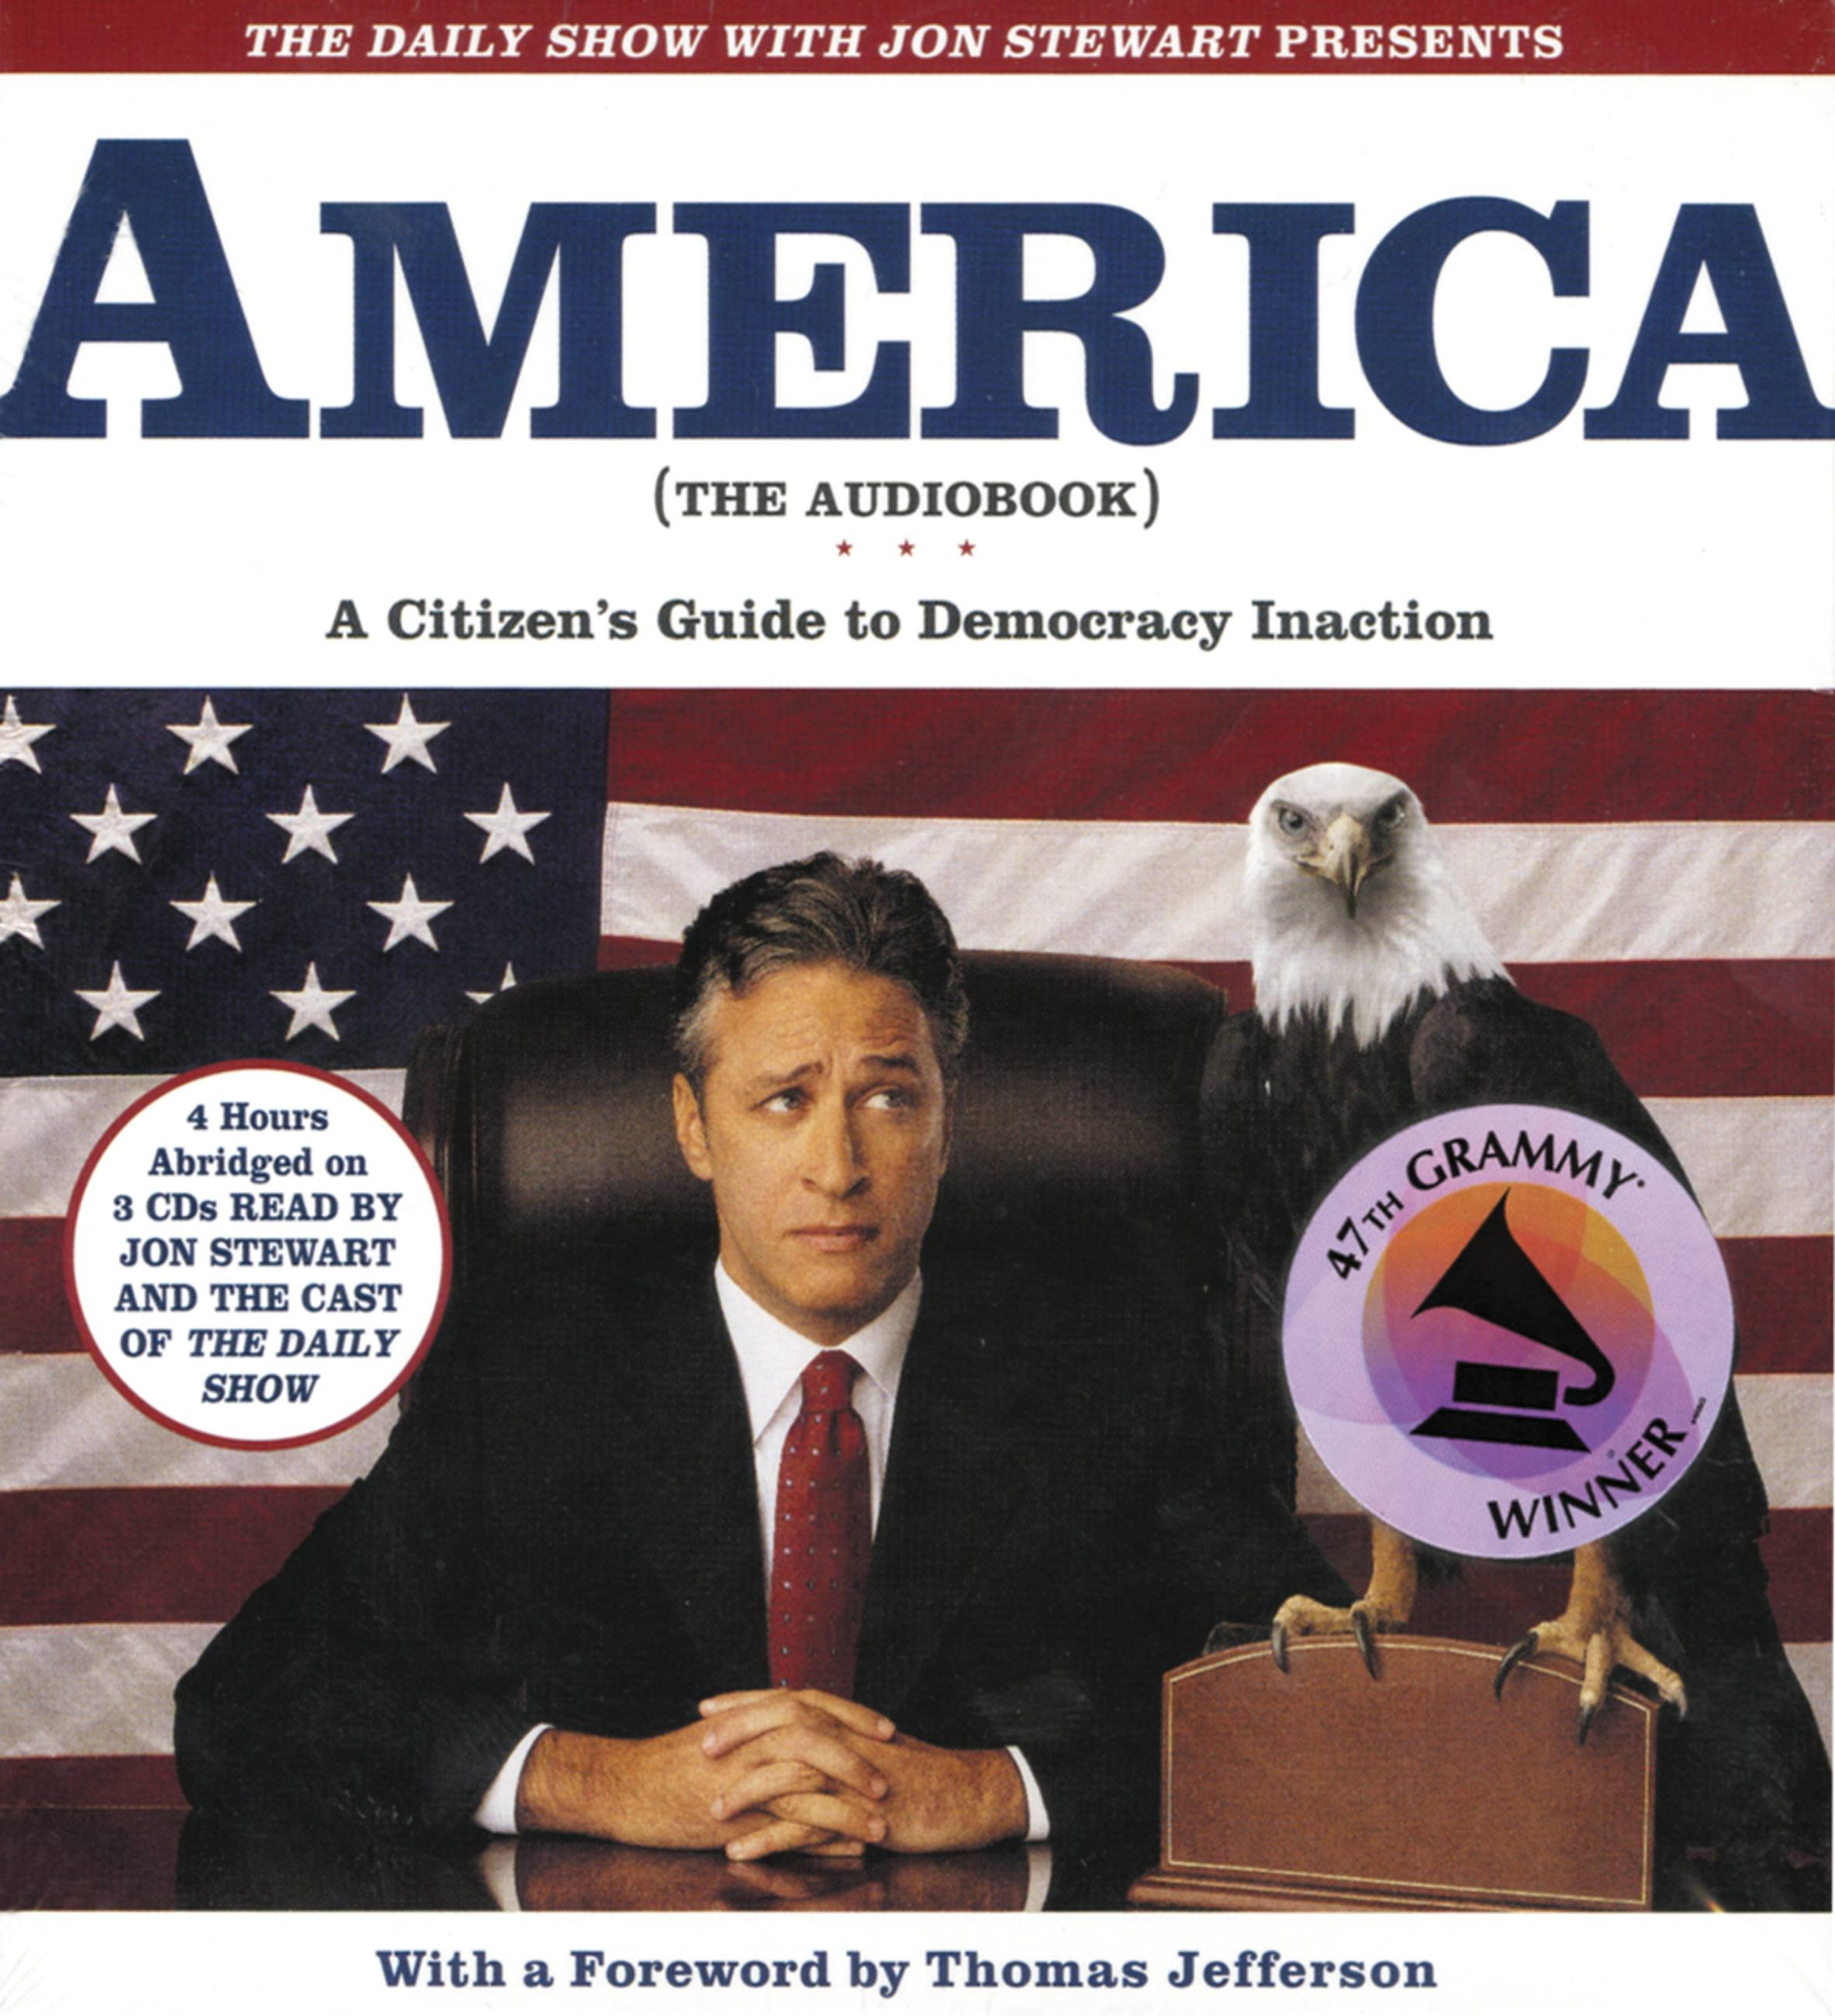 Daily Show with Jon Stewart Presents America (The Book), The